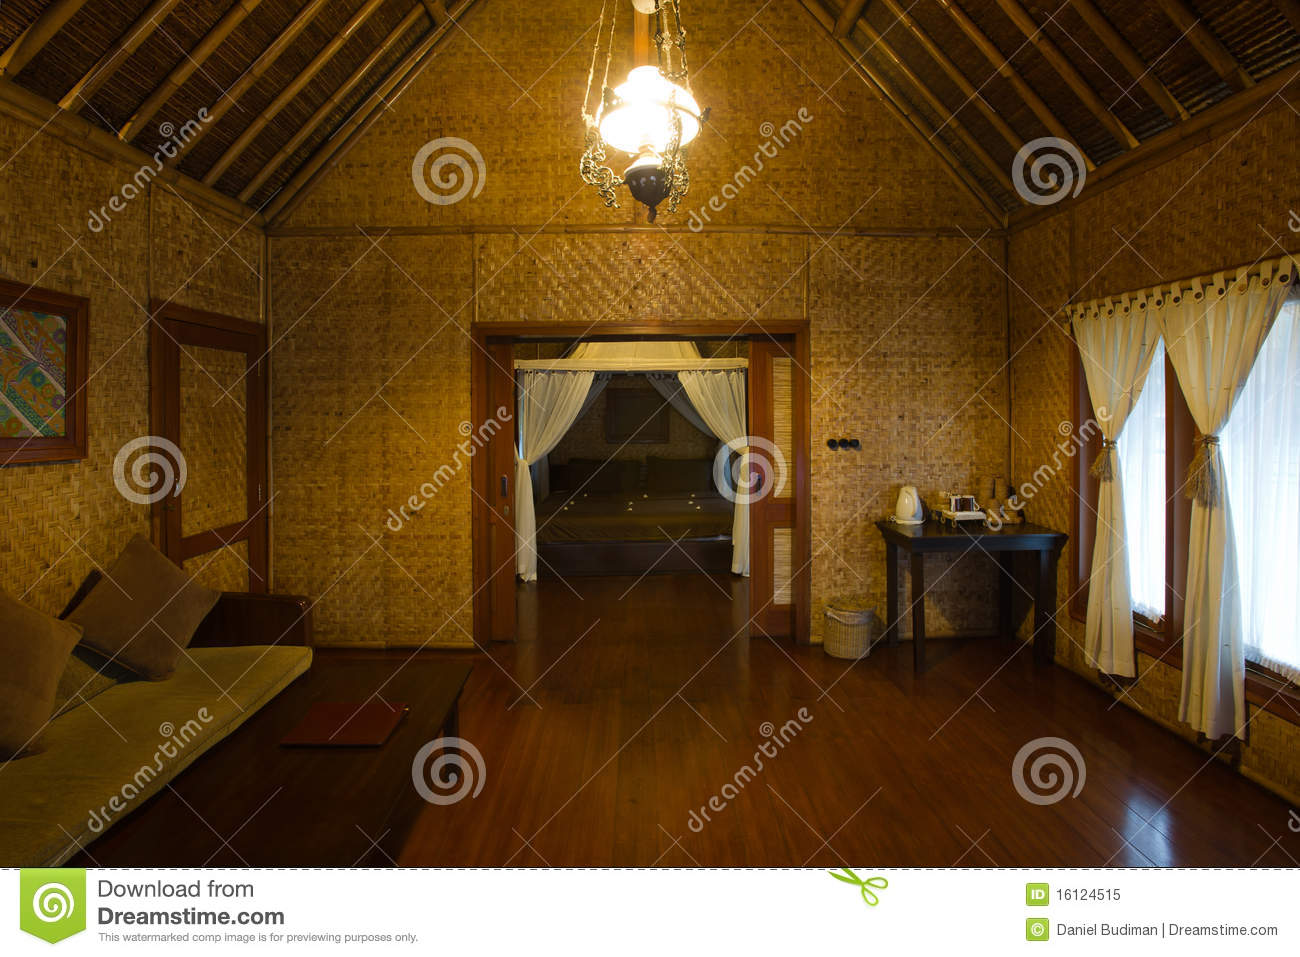 Exotic bamboo hut interior stock image Image of early